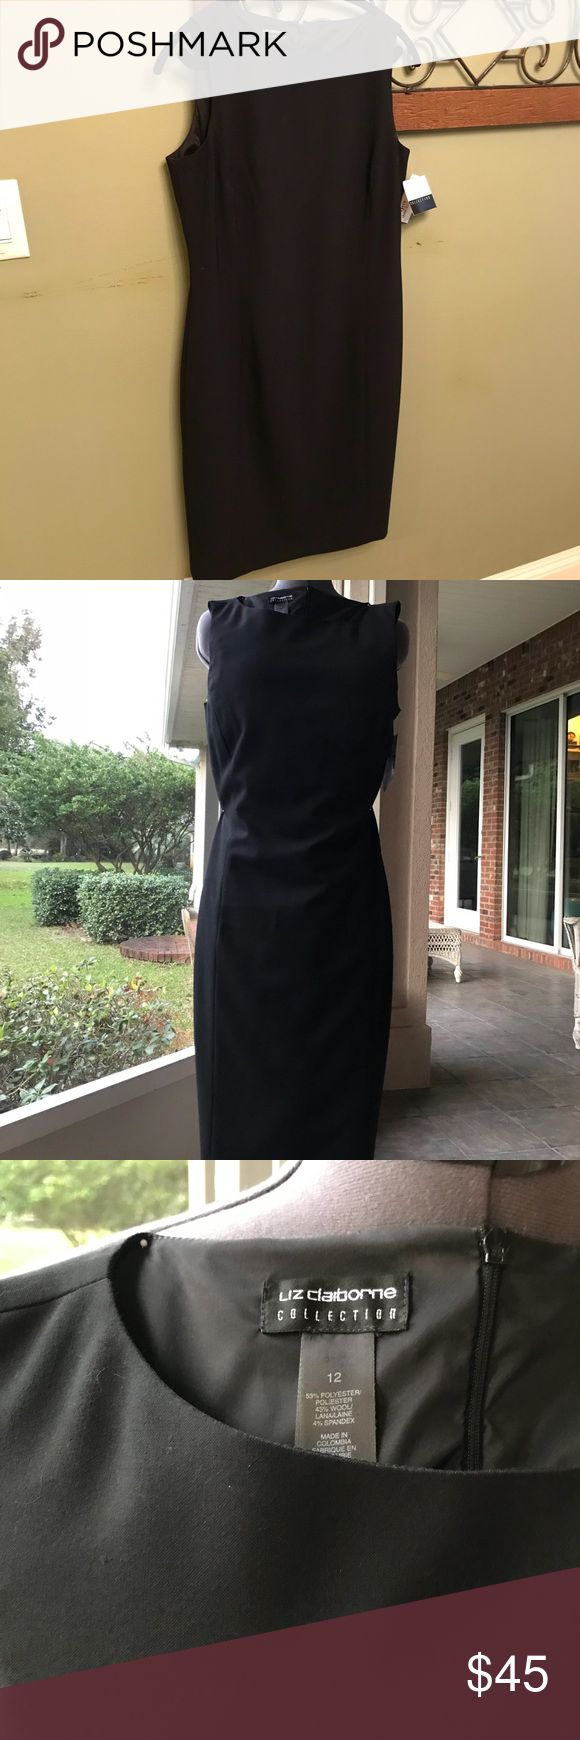 Liz Claiborne little black dress New with tags. Classic pencil style. Fully lined, panel seamed for fitted design.  Size 12, but is designed to be a very tight fit. Liz Claiborne Dresses